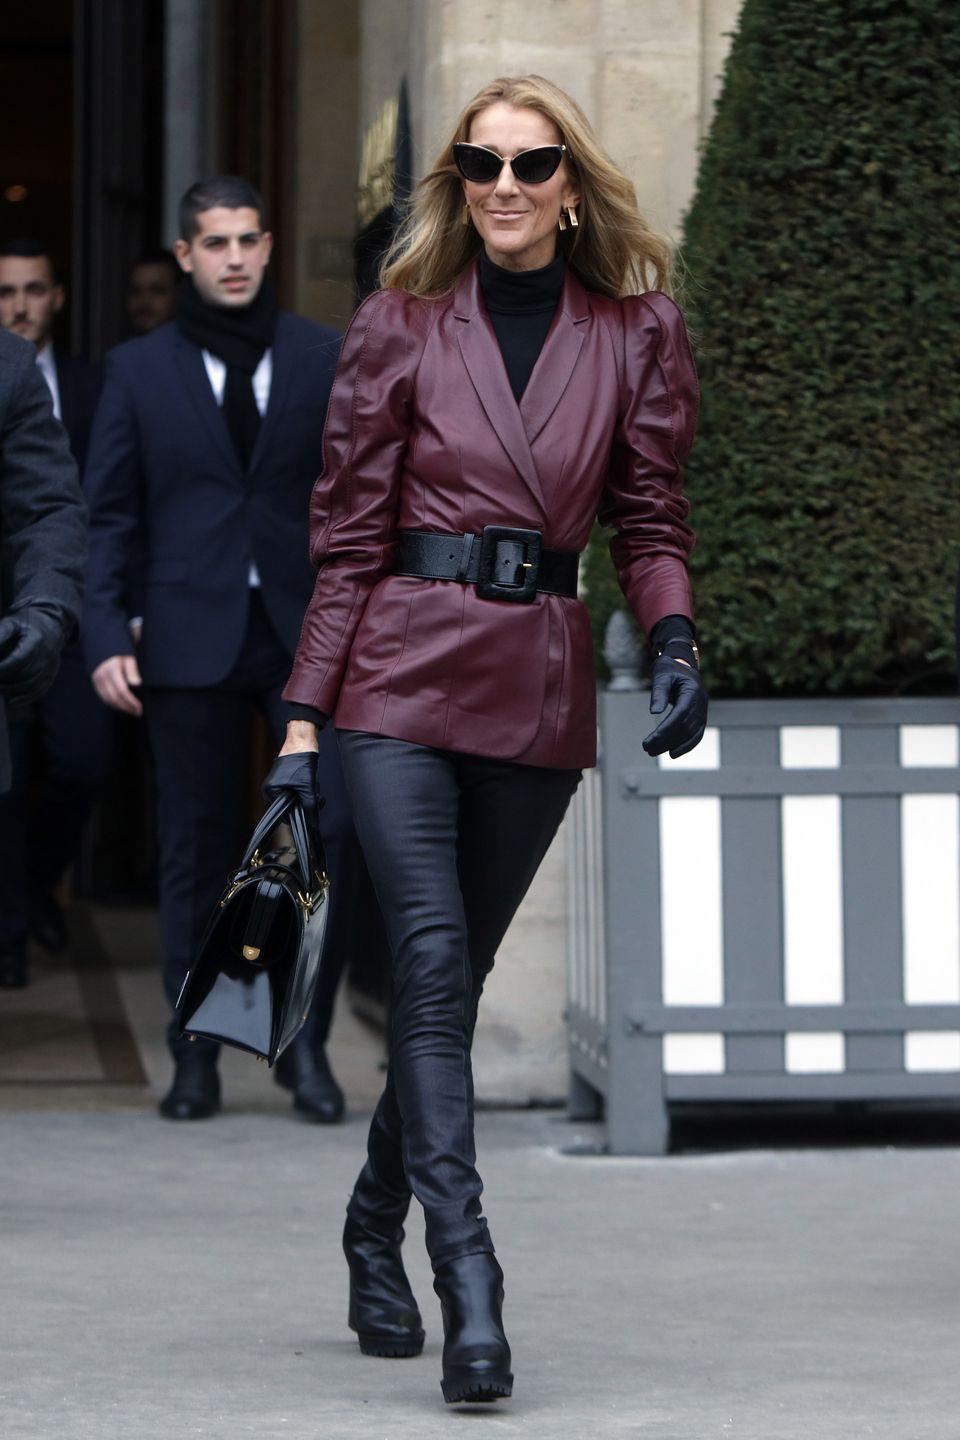 """<p>Hats off to Celine Dion for embracing some of fashion's more intimidating throwback trends. Here she is the height of '80s chic in head-to-toe leather. We love the burgundy color of the jacket and the cinched waist adds extra polish.</p><p><strong>RELATED:</strong> <a href=""""https://www.goodhousekeeping.com/beauty/hair/g28122979/80s-hair-ideas/"""" rel=""""nofollow noopener"""" target=""""_blank"""" data-ylk=""""slk:13 Amazing Hairstyles from the '80s"""" class=""""link rapid-noclick-resp"""">13 Amazing Hairstyles from the '80s</a></p>"""